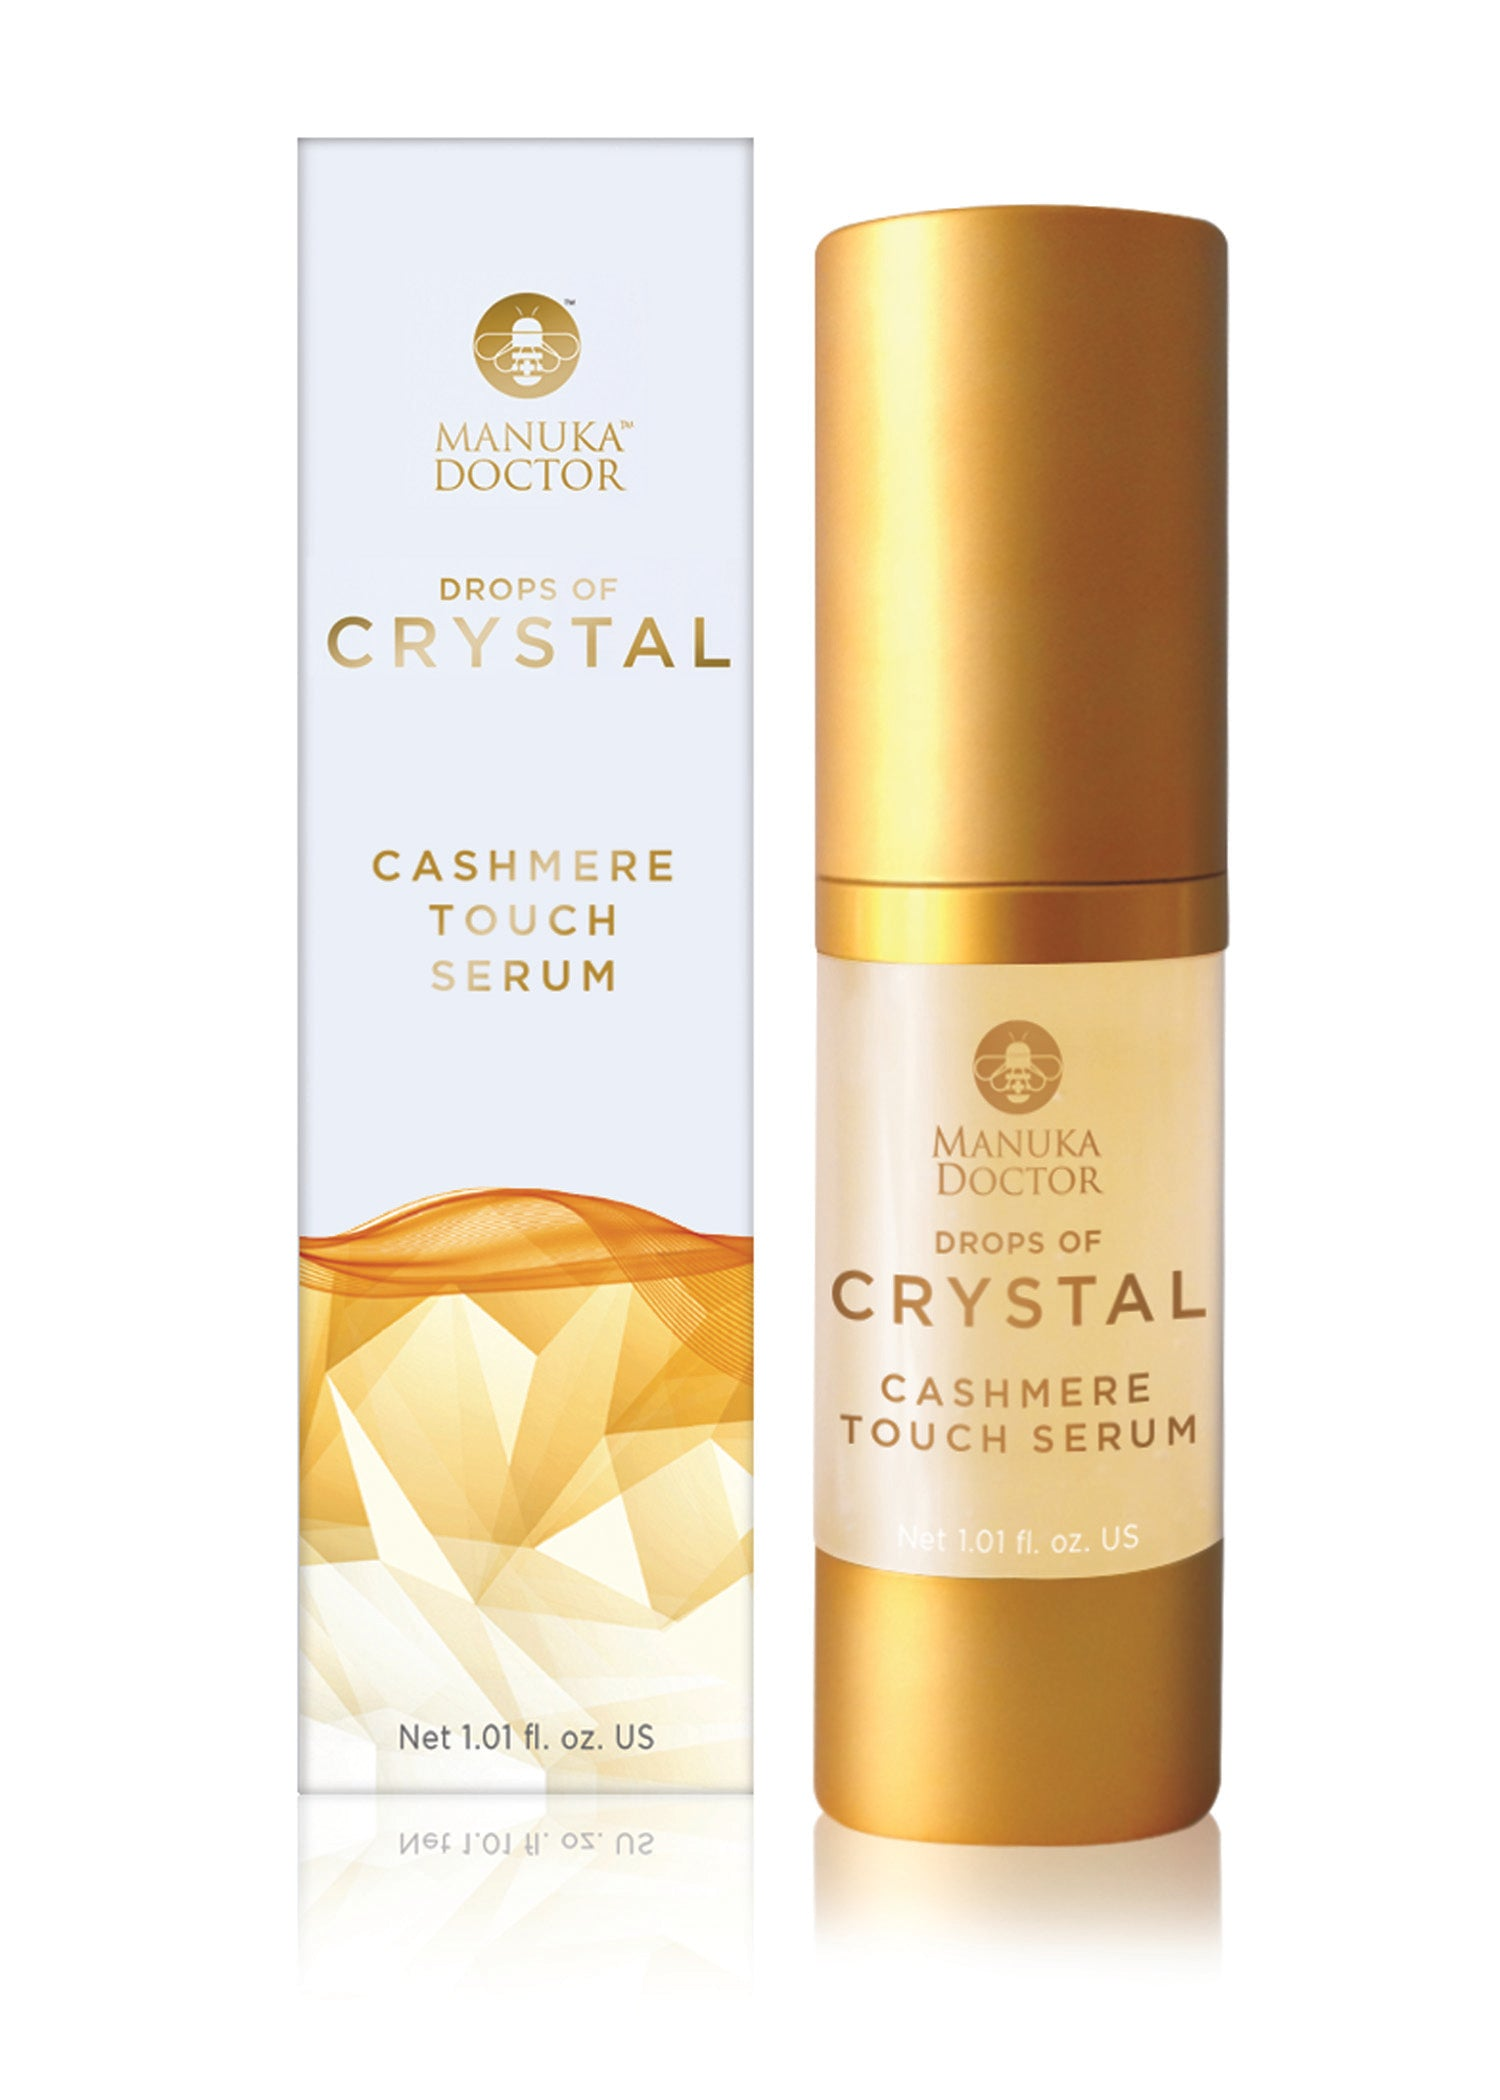 Manuka Doctor - Drops of Crystal Cashmere Touch Serum